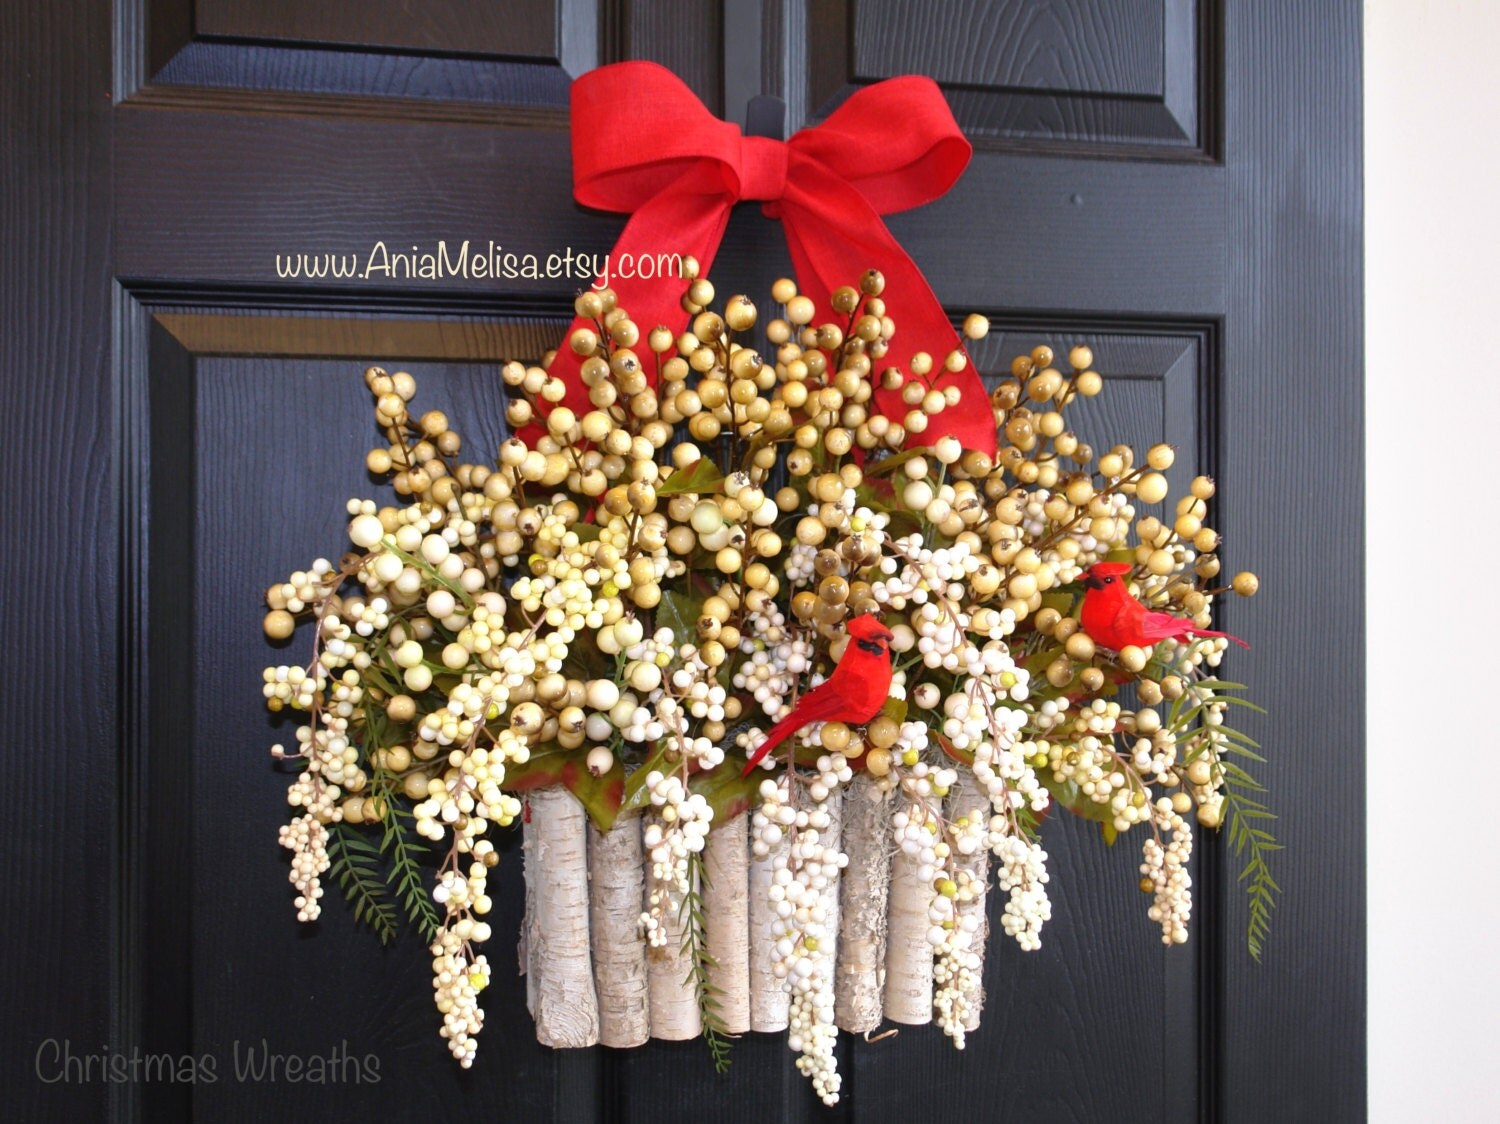 Holiday wreath christmas wreaths for front door wreaths winter for Front door xmas wreaths